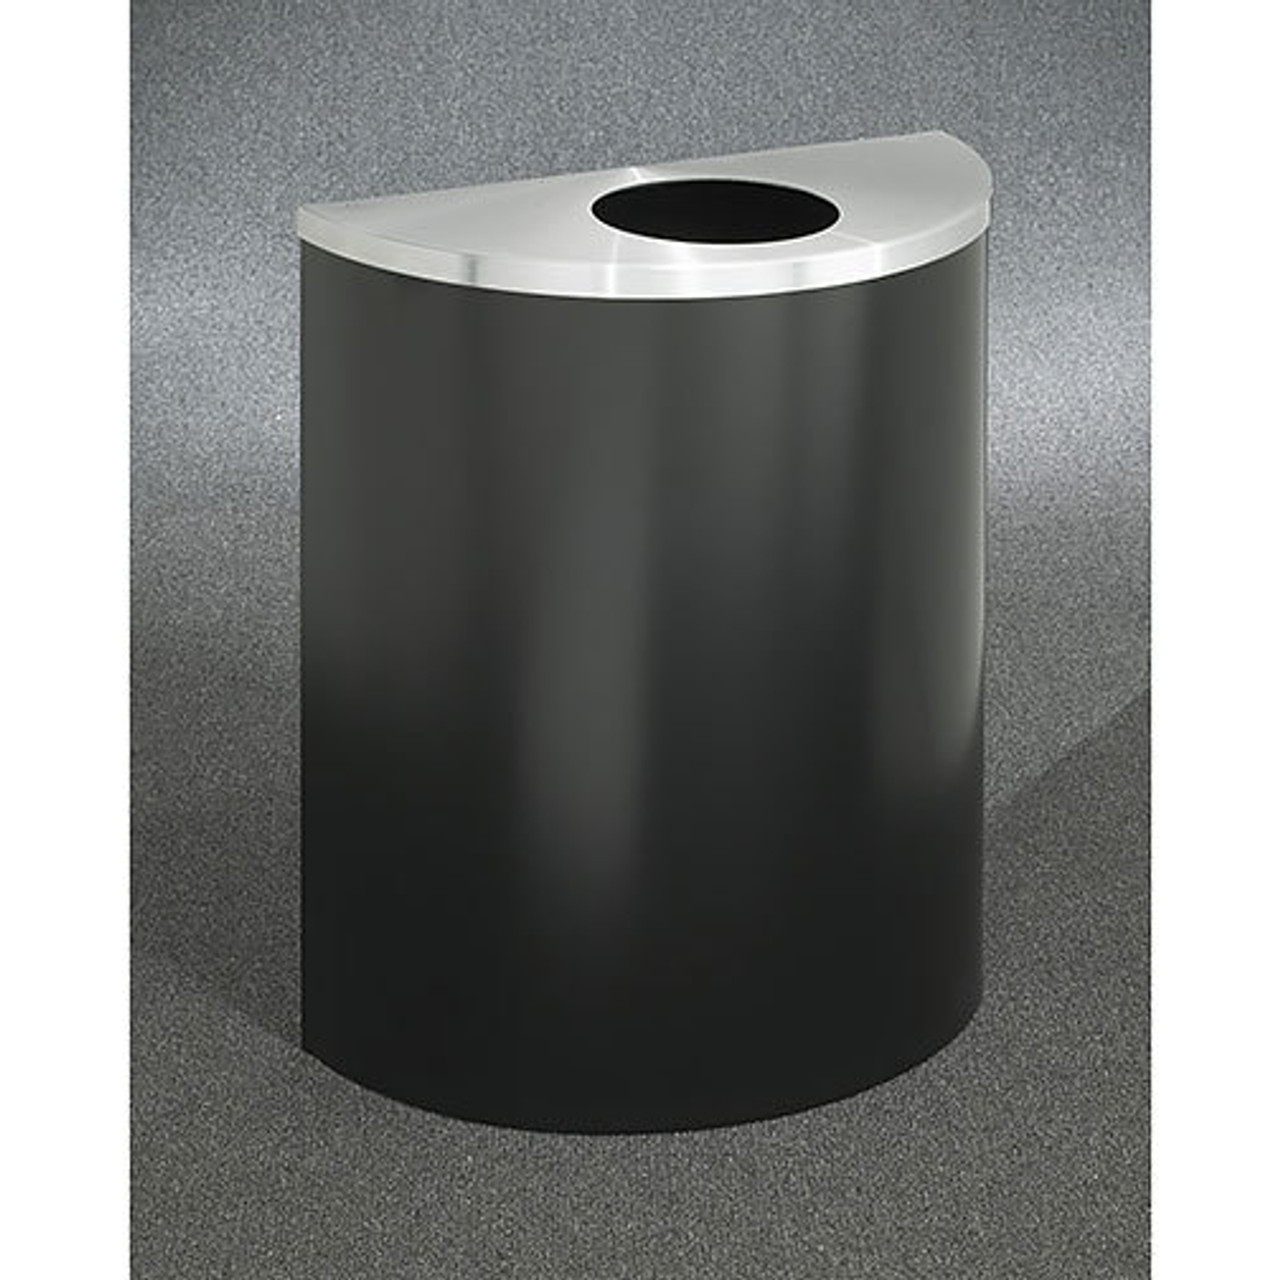 Glaro Profile Trash Cans